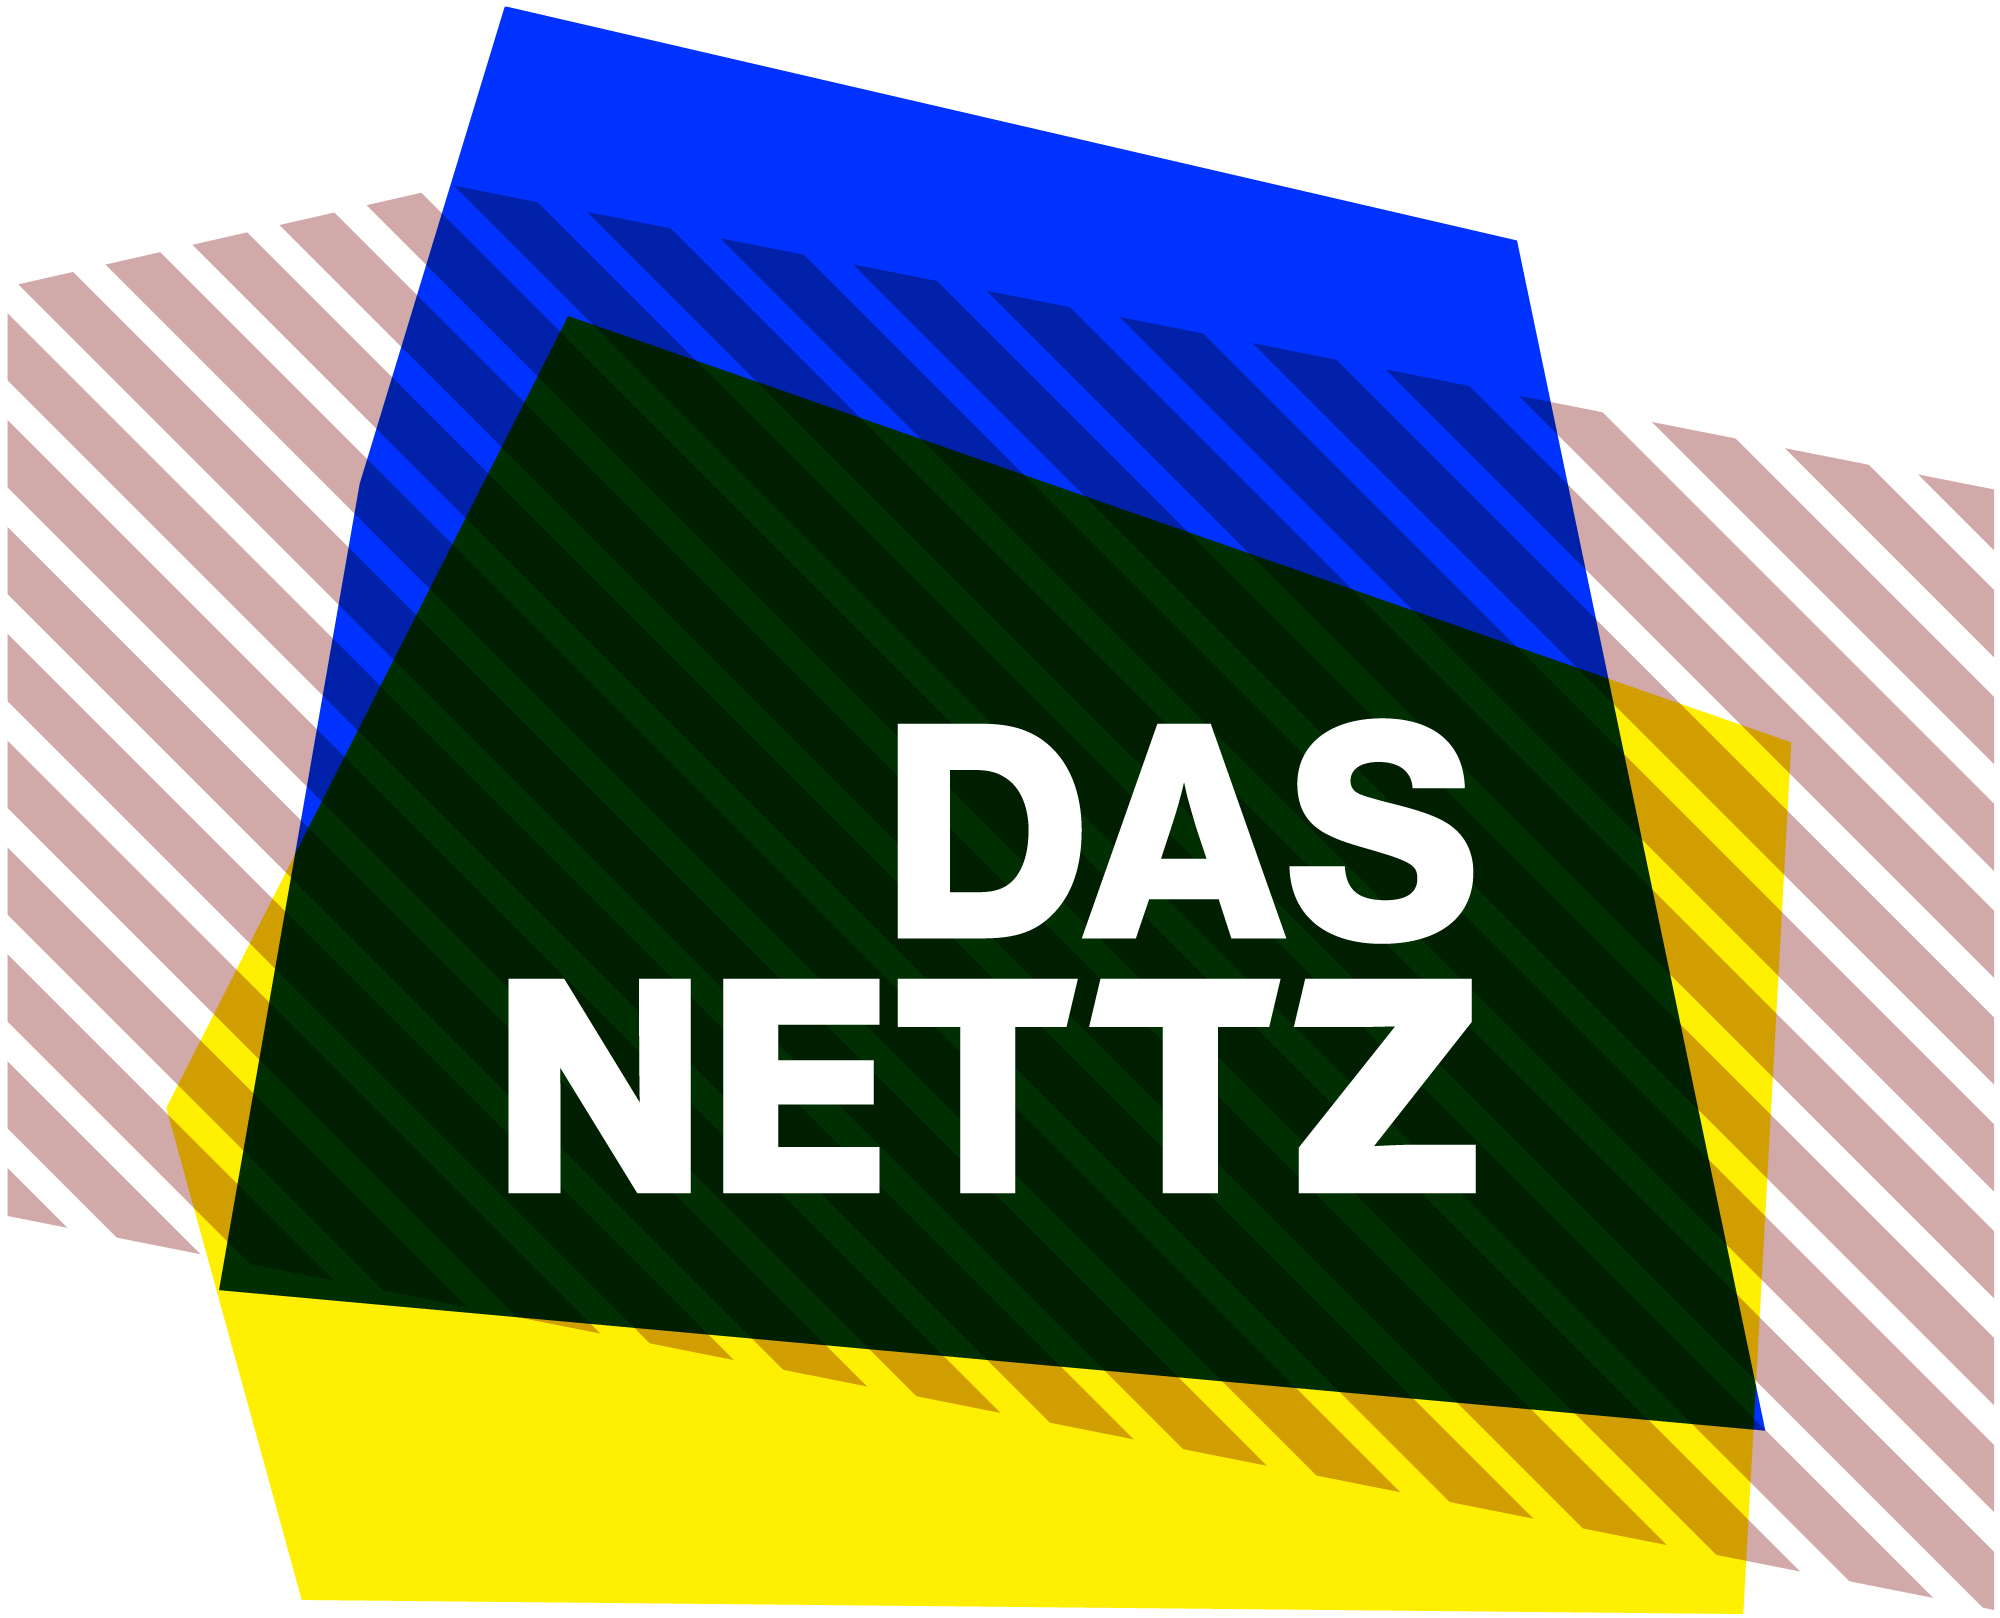 Das NETTZ / betterplace lab